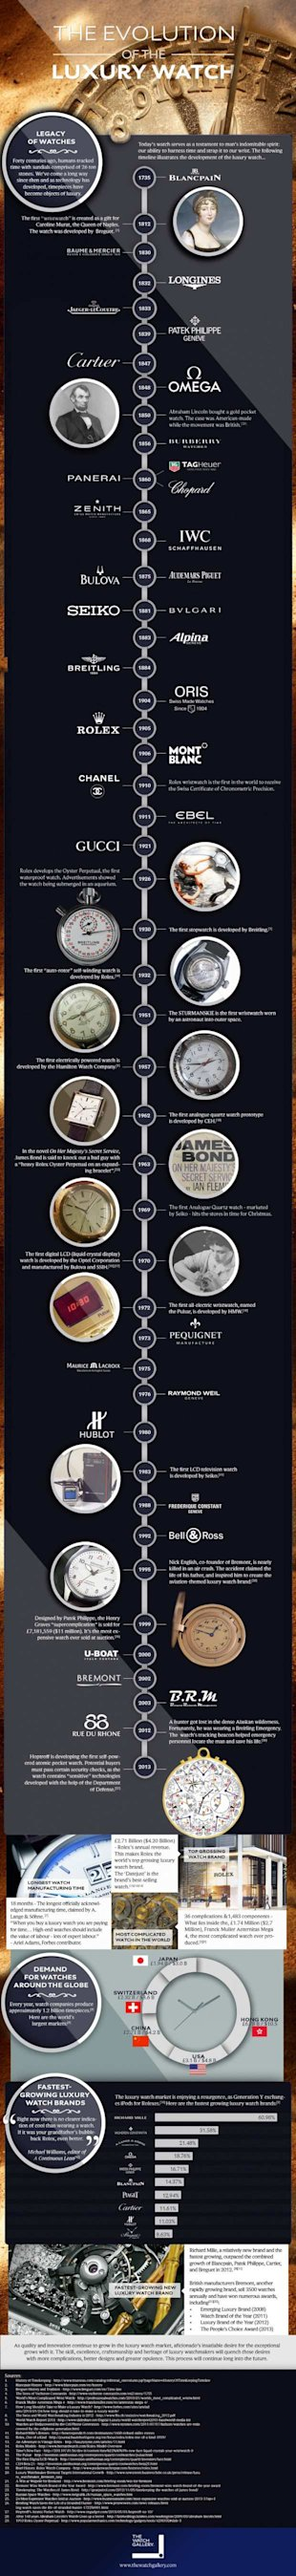 Evolution of the Luxury Watch [Inforaphic] image resizedimage6205391 evolution of the luxury watch